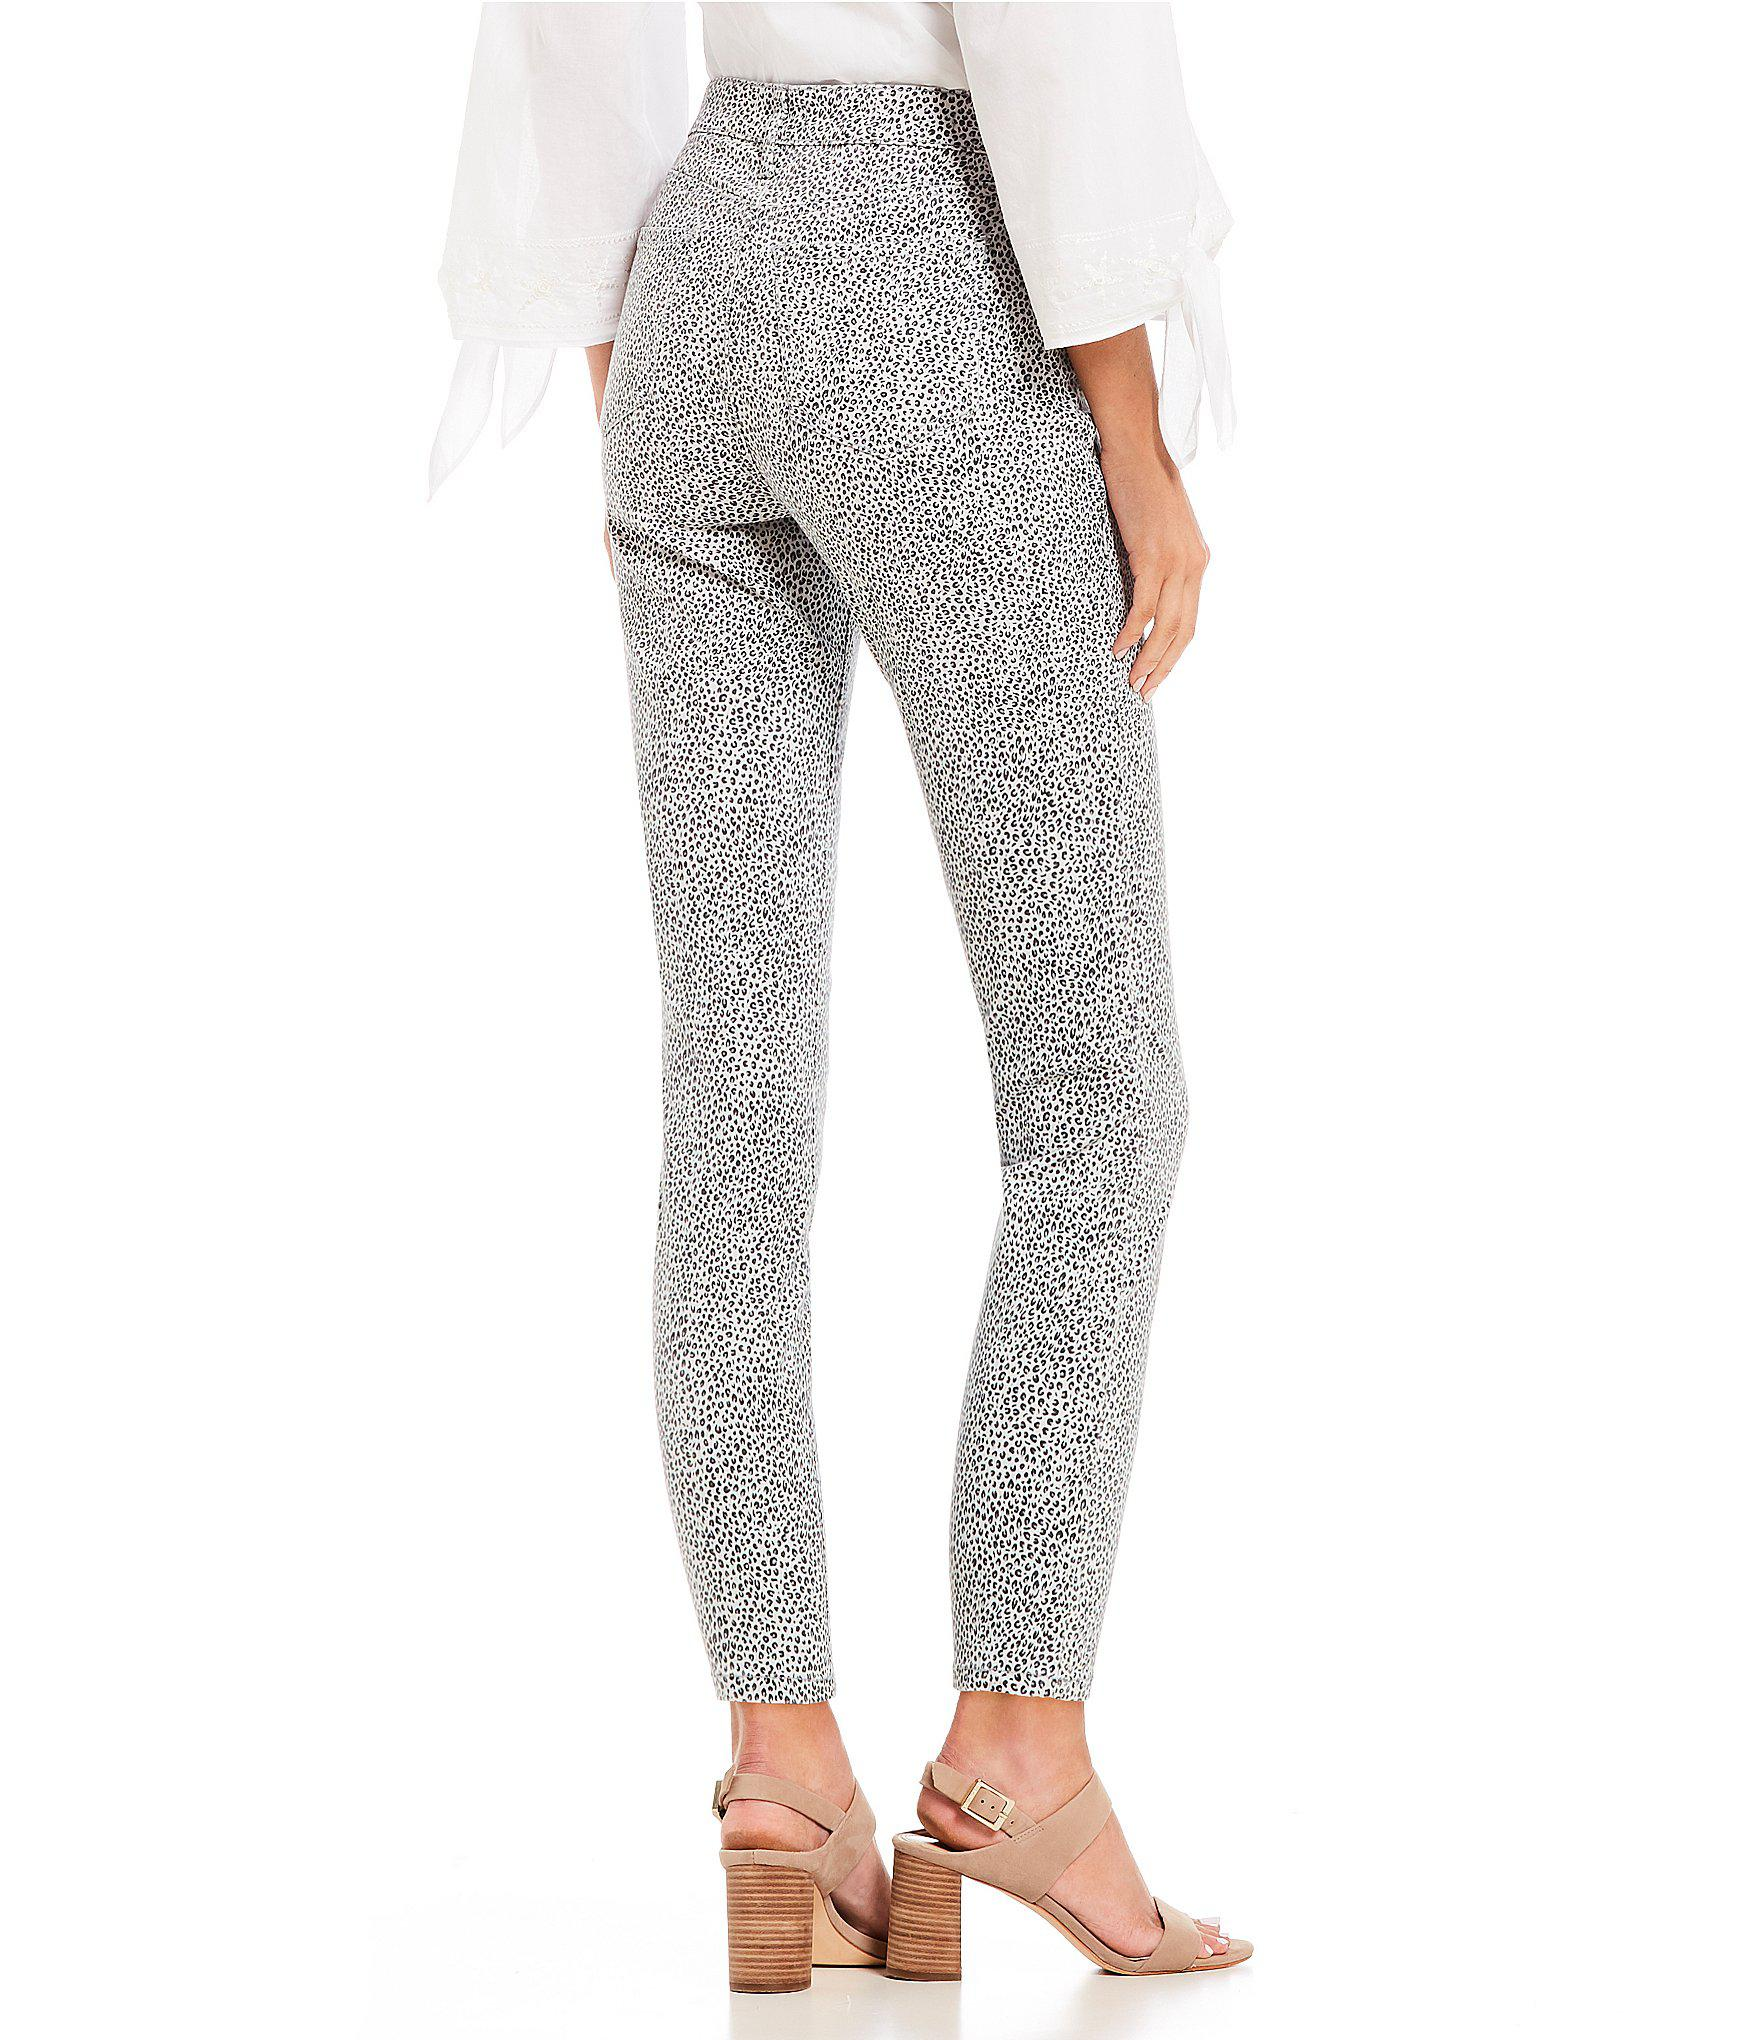 ca992a23cdfd NYDJ Ami Leopard Print Skinny Ankle Jeans in Gray - Lyst